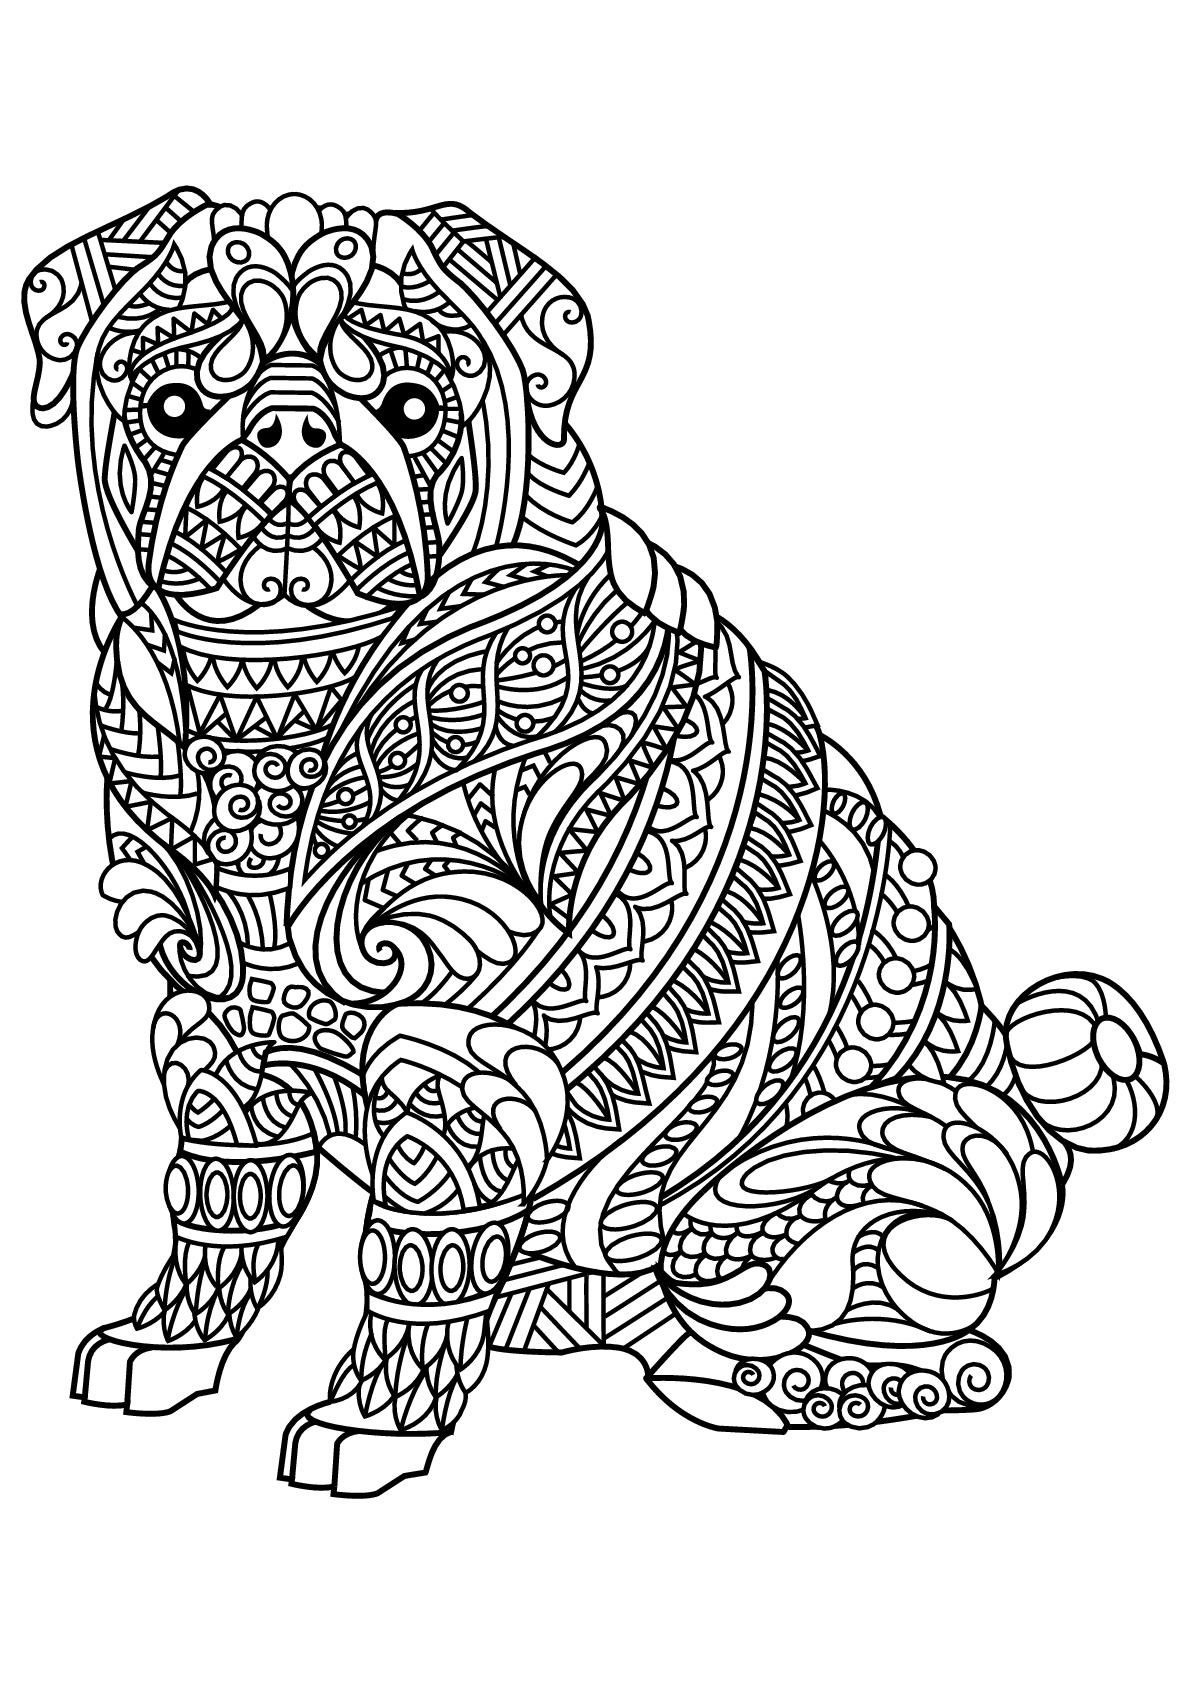 Bulldog Colouring Pages : bulldog, colouring, pages, Bulldog, Coloring, Pages